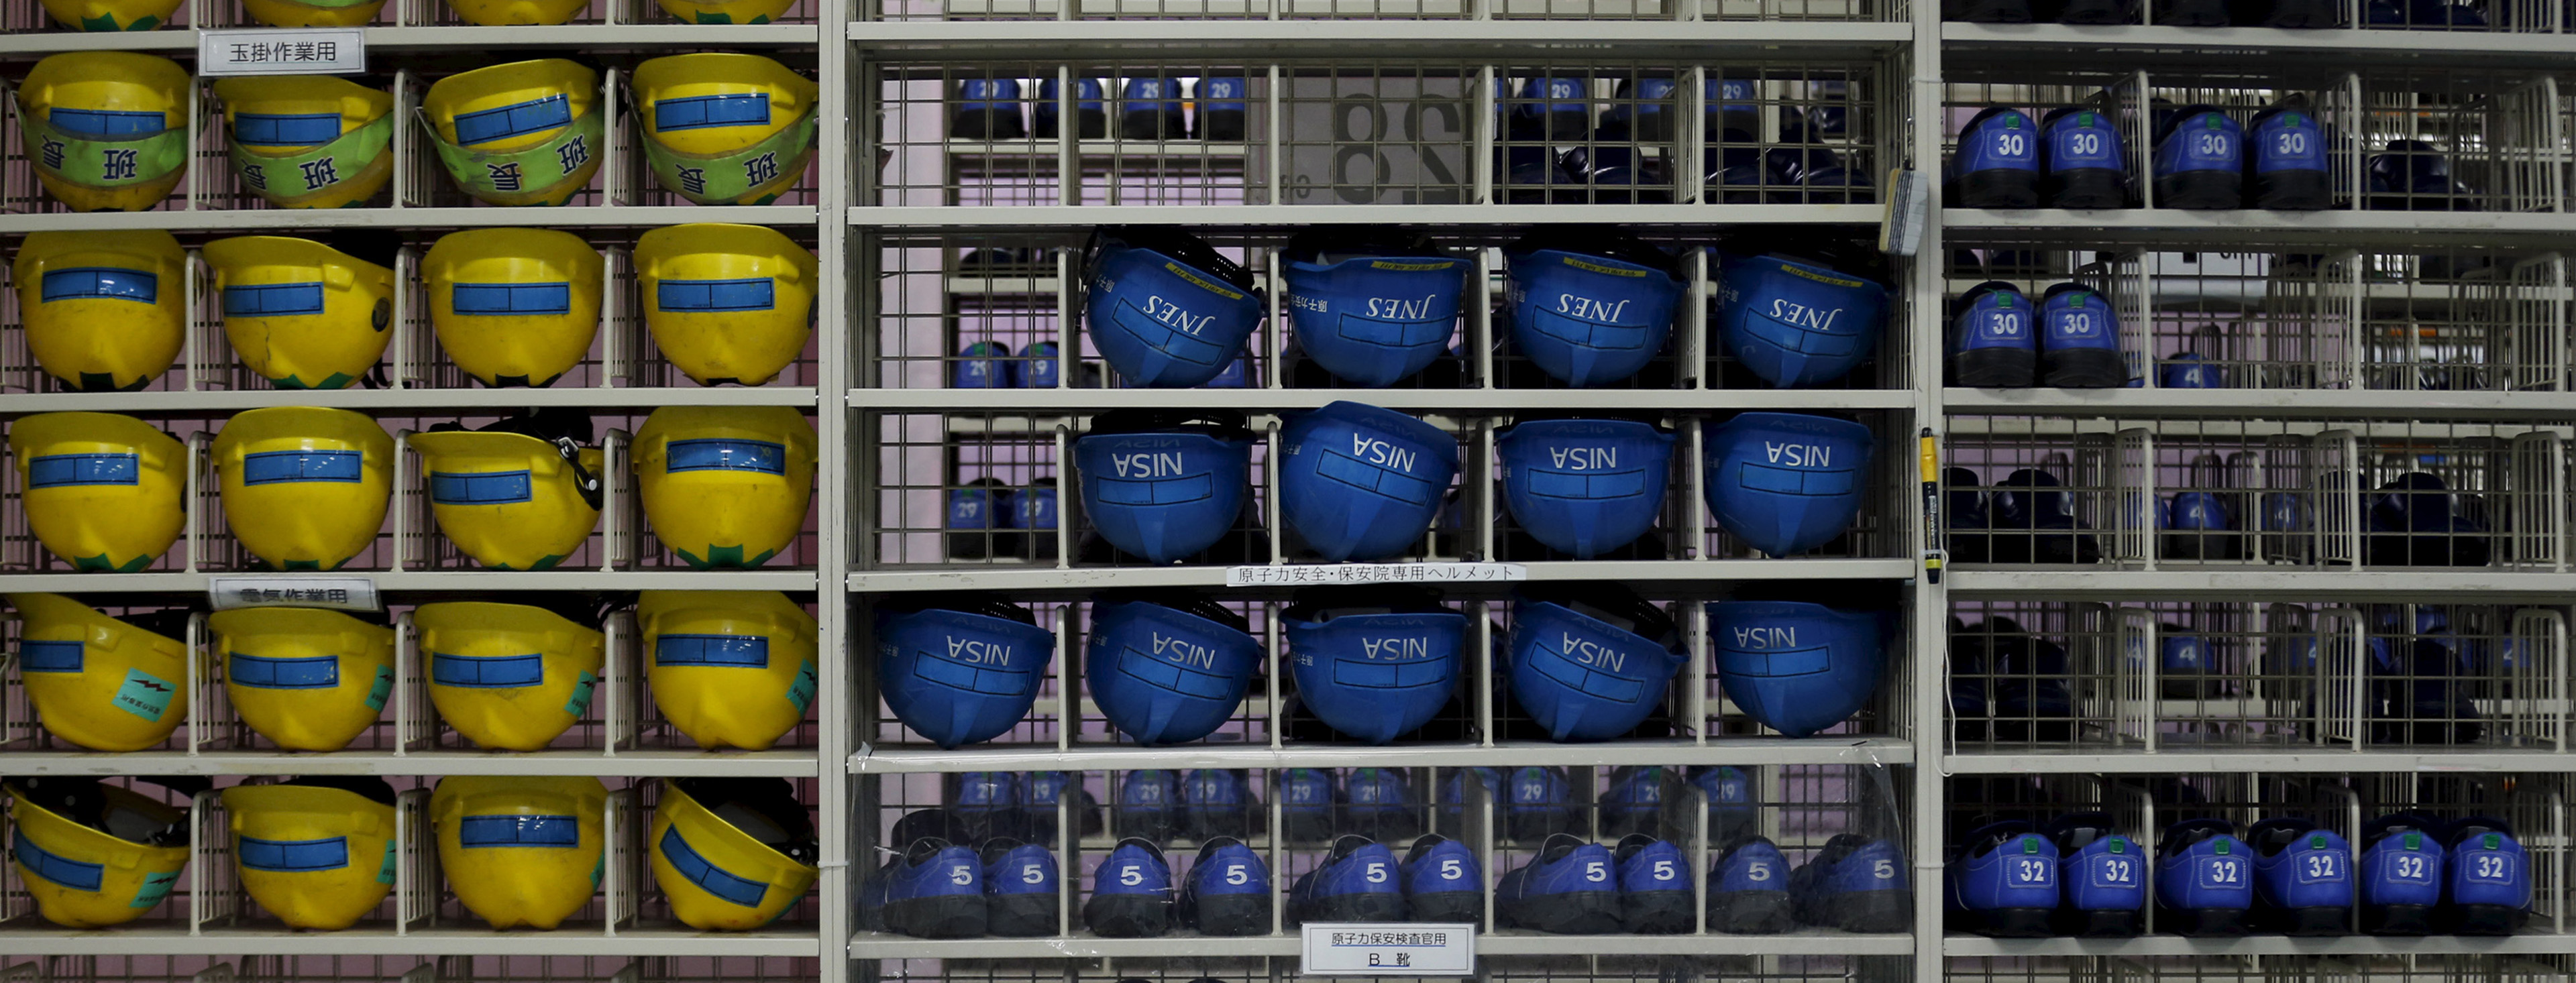 Helmets and shoes for workers who work inside reactor building are placed in shelves at no.6 reactor building at Tokyo Electric Power Co.'s Kashiwazaki Kariwa nuclear power plant